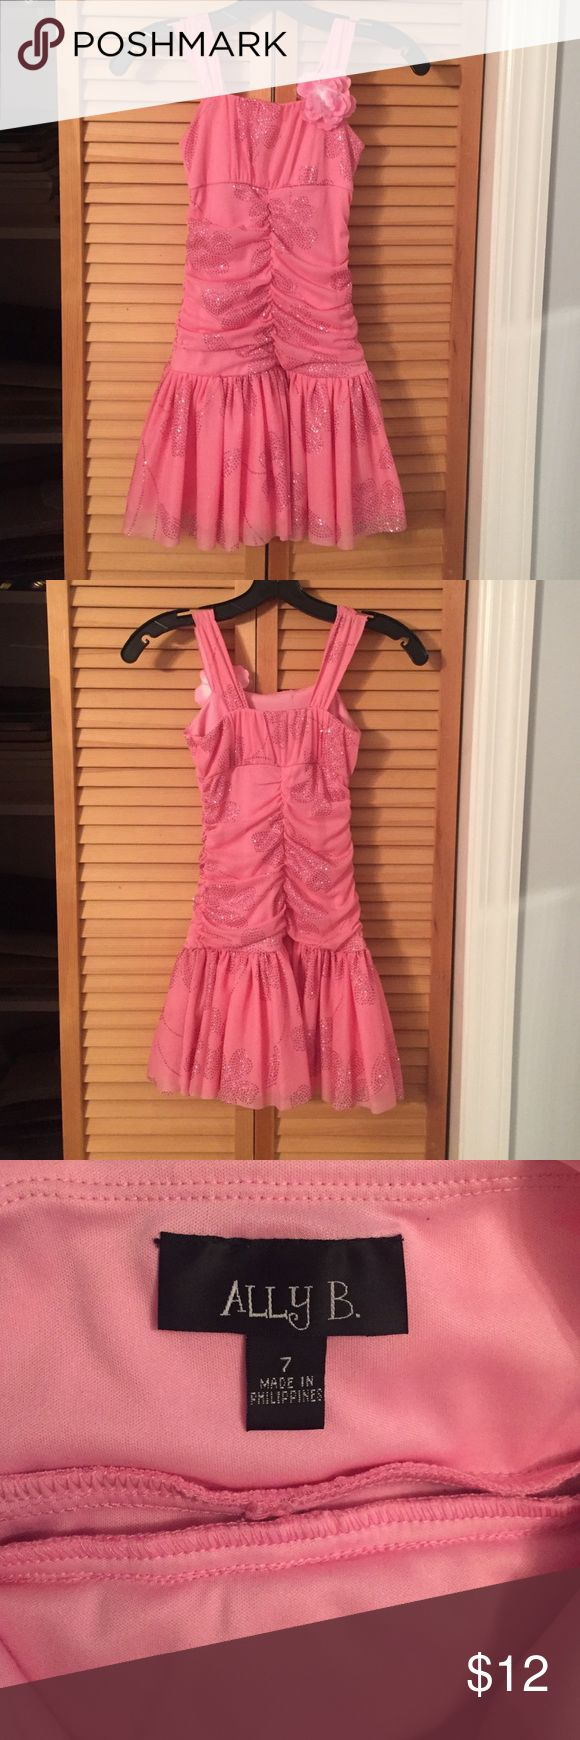 💖Beautiful Ally B. Pink sparkly dress! 💖 Beautiful sparkly dress. Barely noticeable stains at the bottom of the skirt as show in the last photograph. Ally B. Dresses Formal